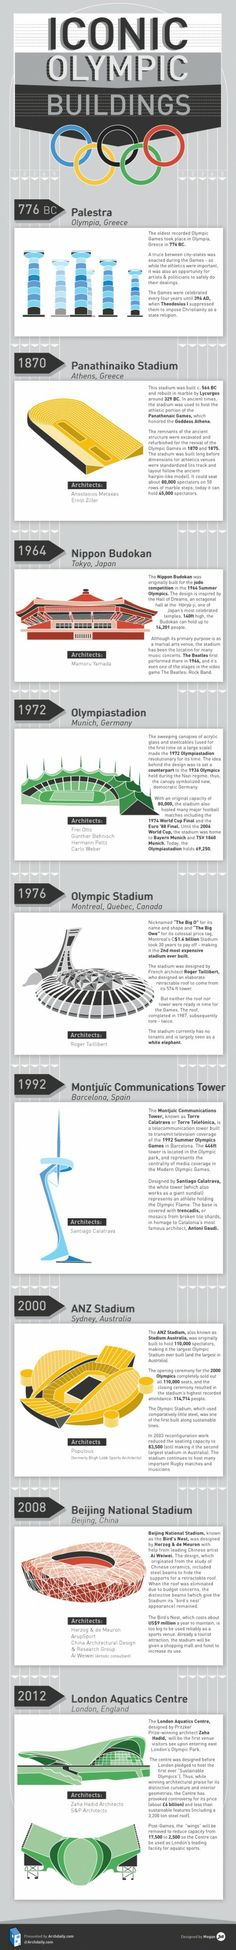 Culture Branding Iconic Olympic Buildings CLICK THE IMAGE FOR MORE!!